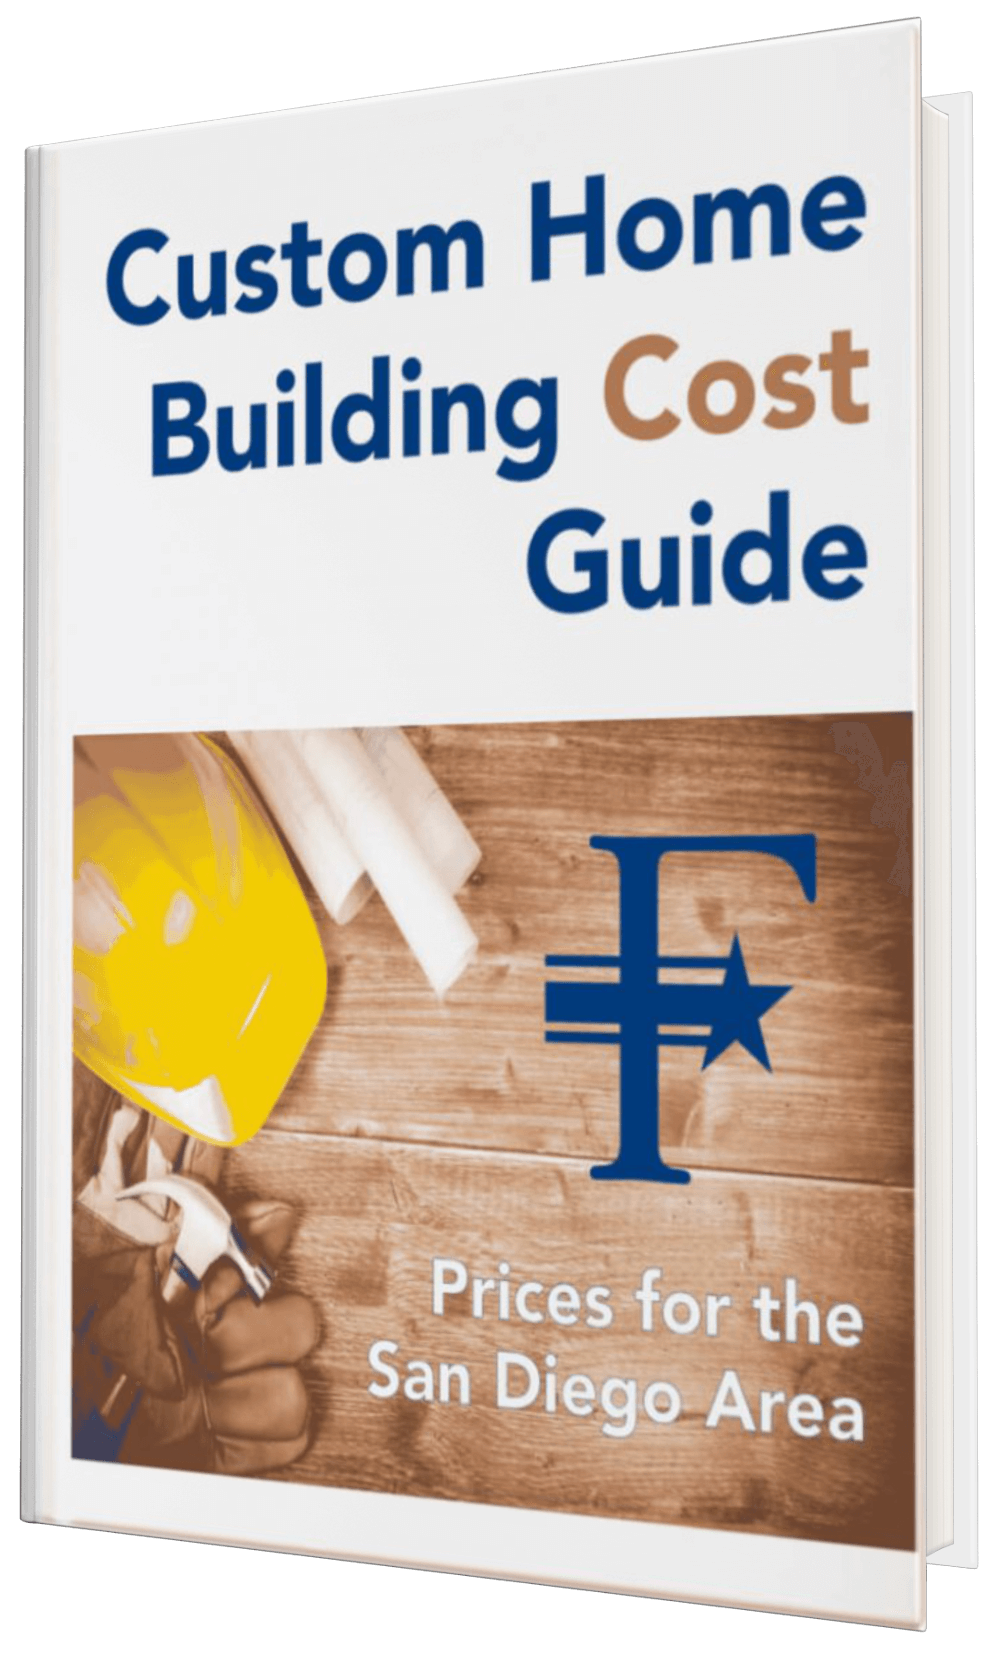 Custom Home Building Cost Guide